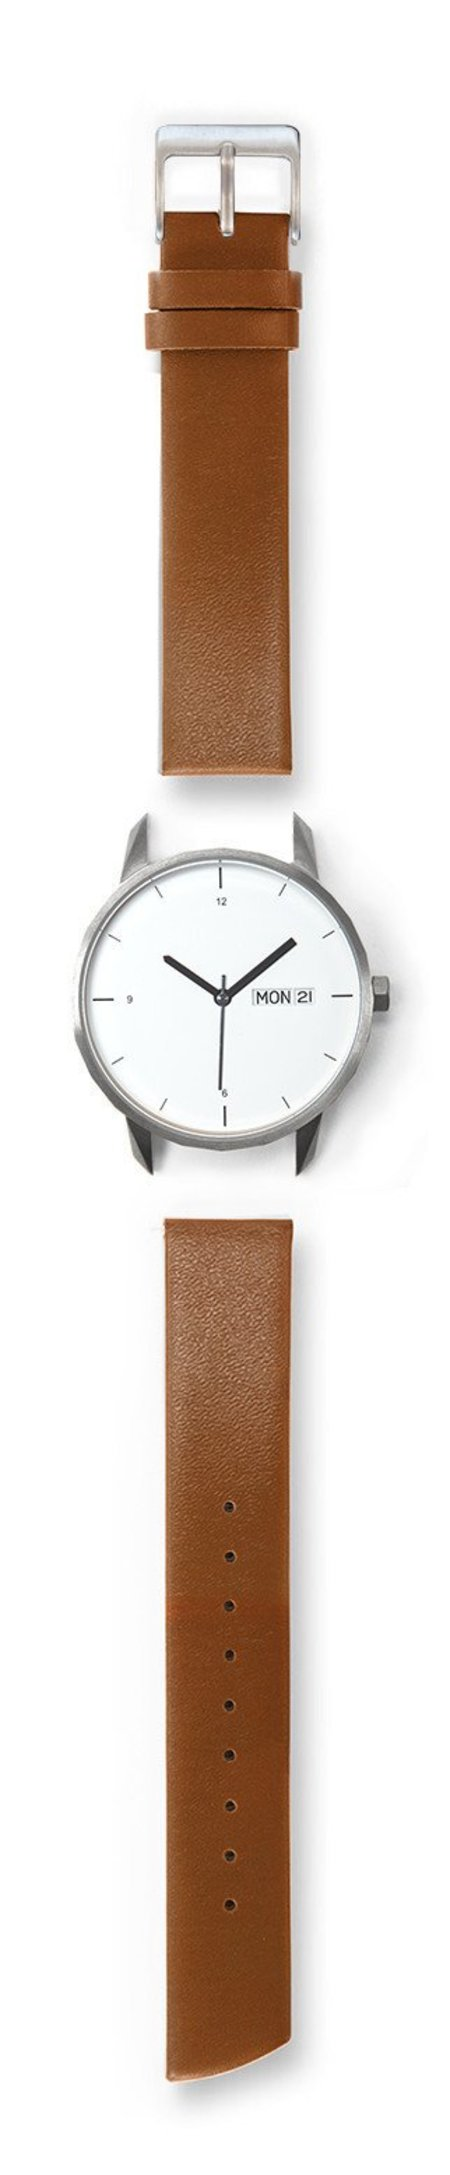 Tinker Watches 38mm Silver Watch Camel Strap